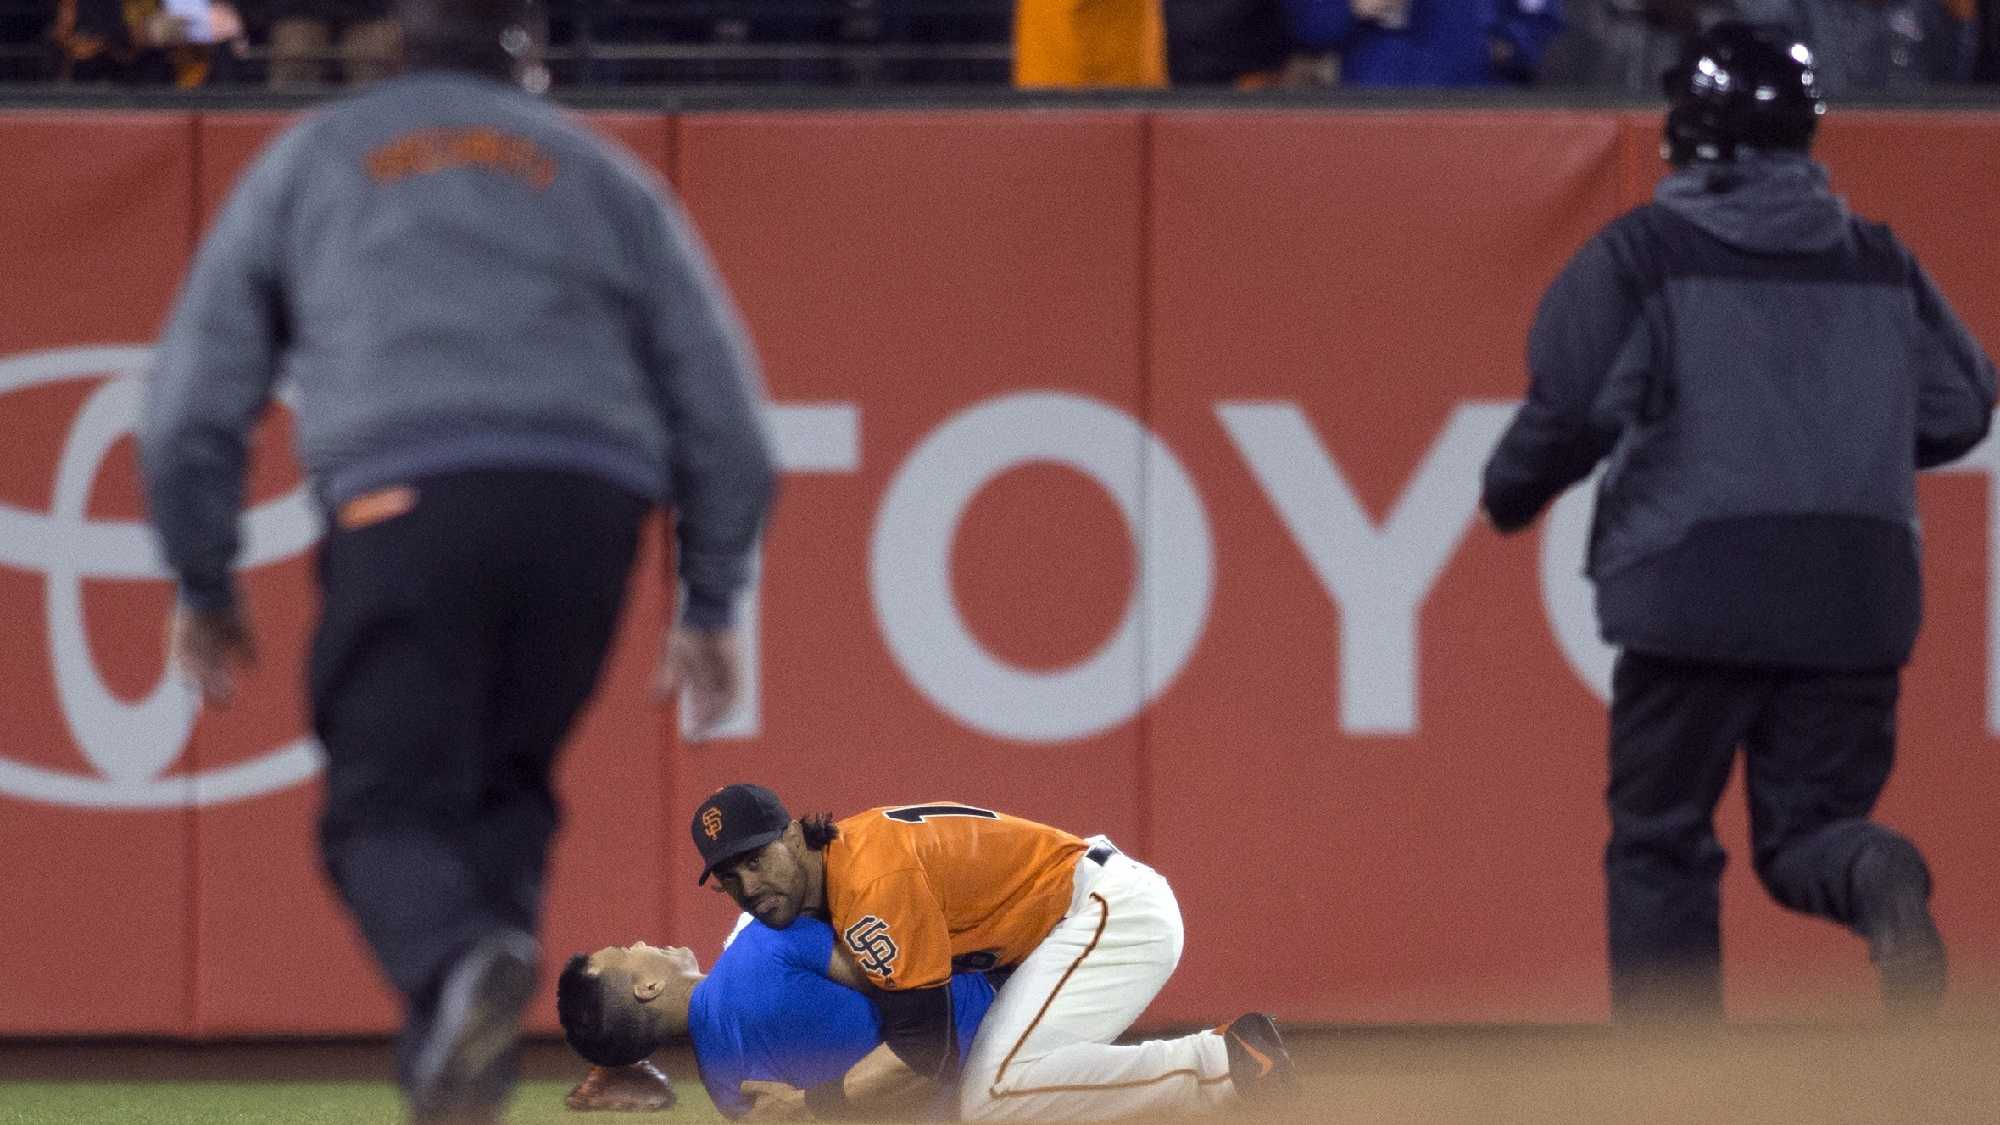 San Francisco Giants' Angel Pagan (16) holds down a man who ran onto the field during the fourth inning of the Giants' baseball game against the Los Angeles Dodgers, Friday, Sept. 30, 2016, in San Francisco.